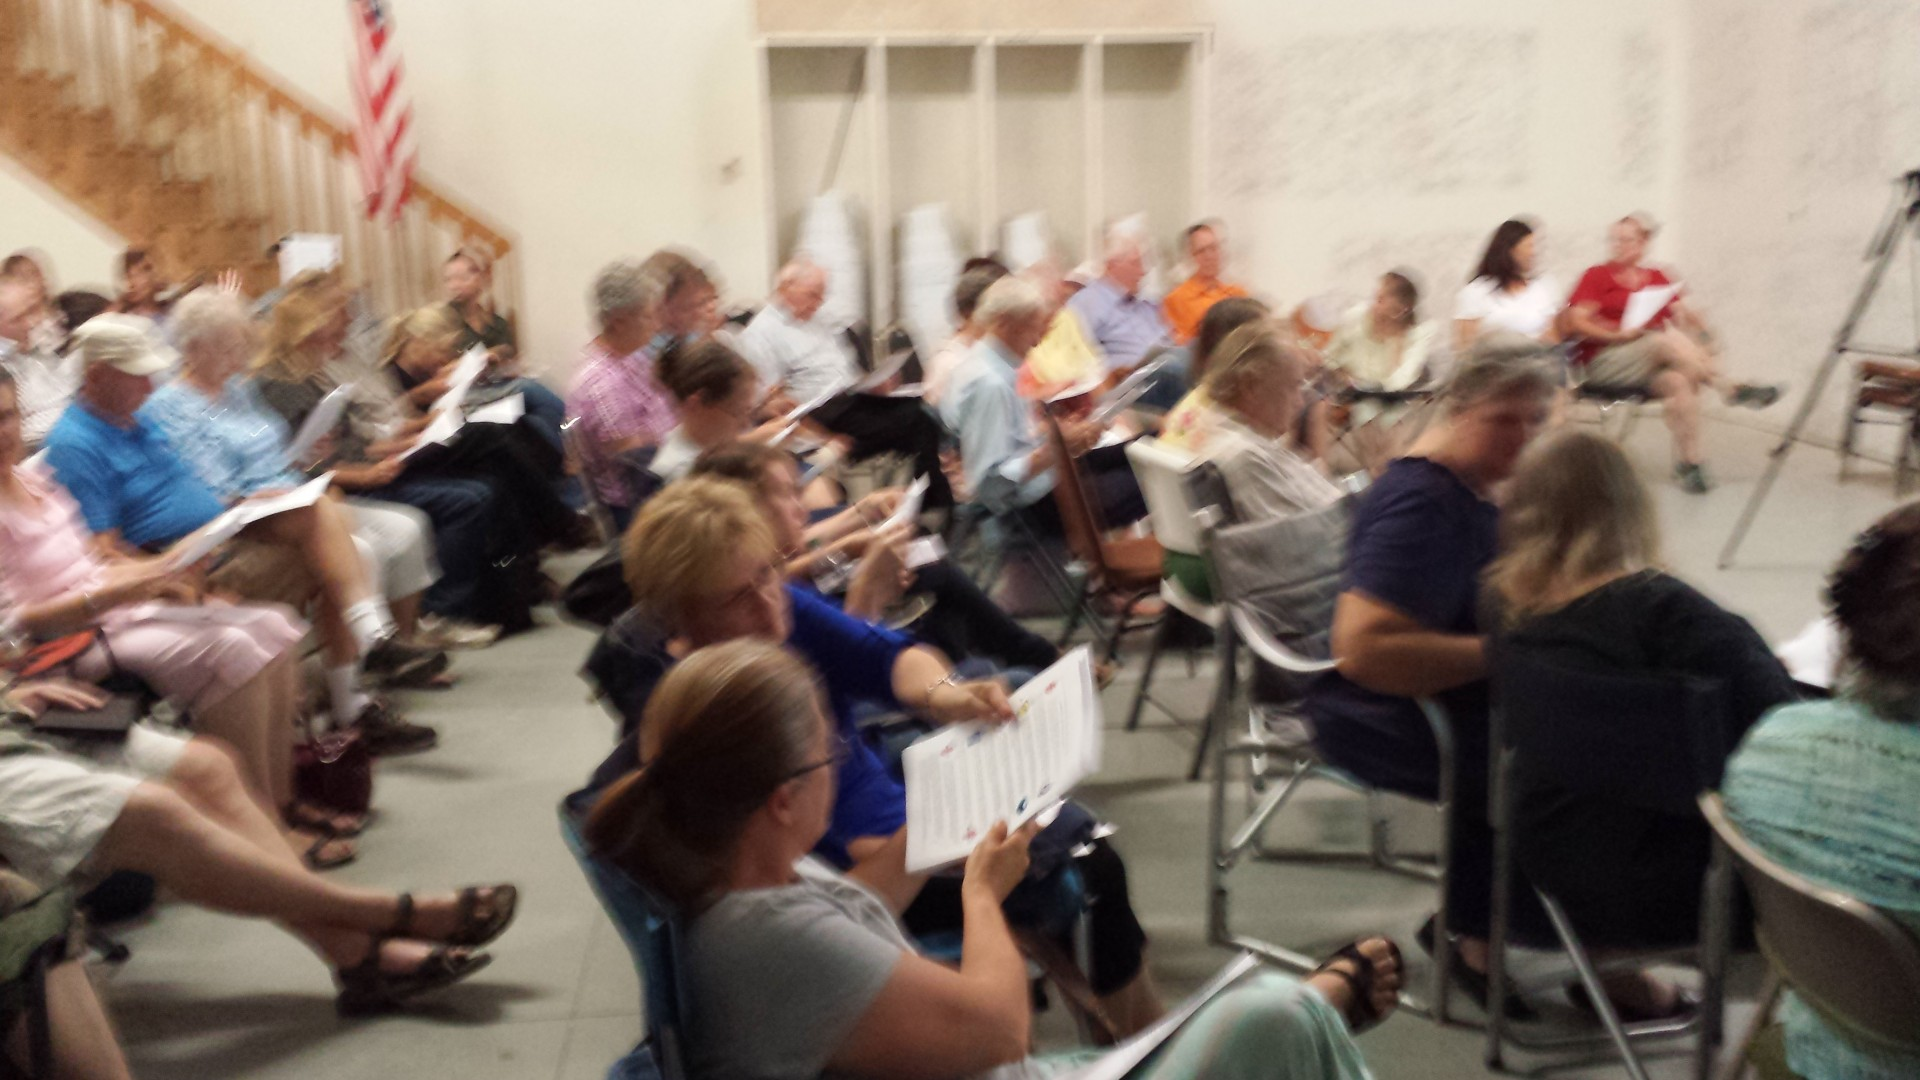 Prep meeting in Diamond Valley. Diamond Valley Fire House. Aug 12, 2014 | Photo by T.S Romney St. George News